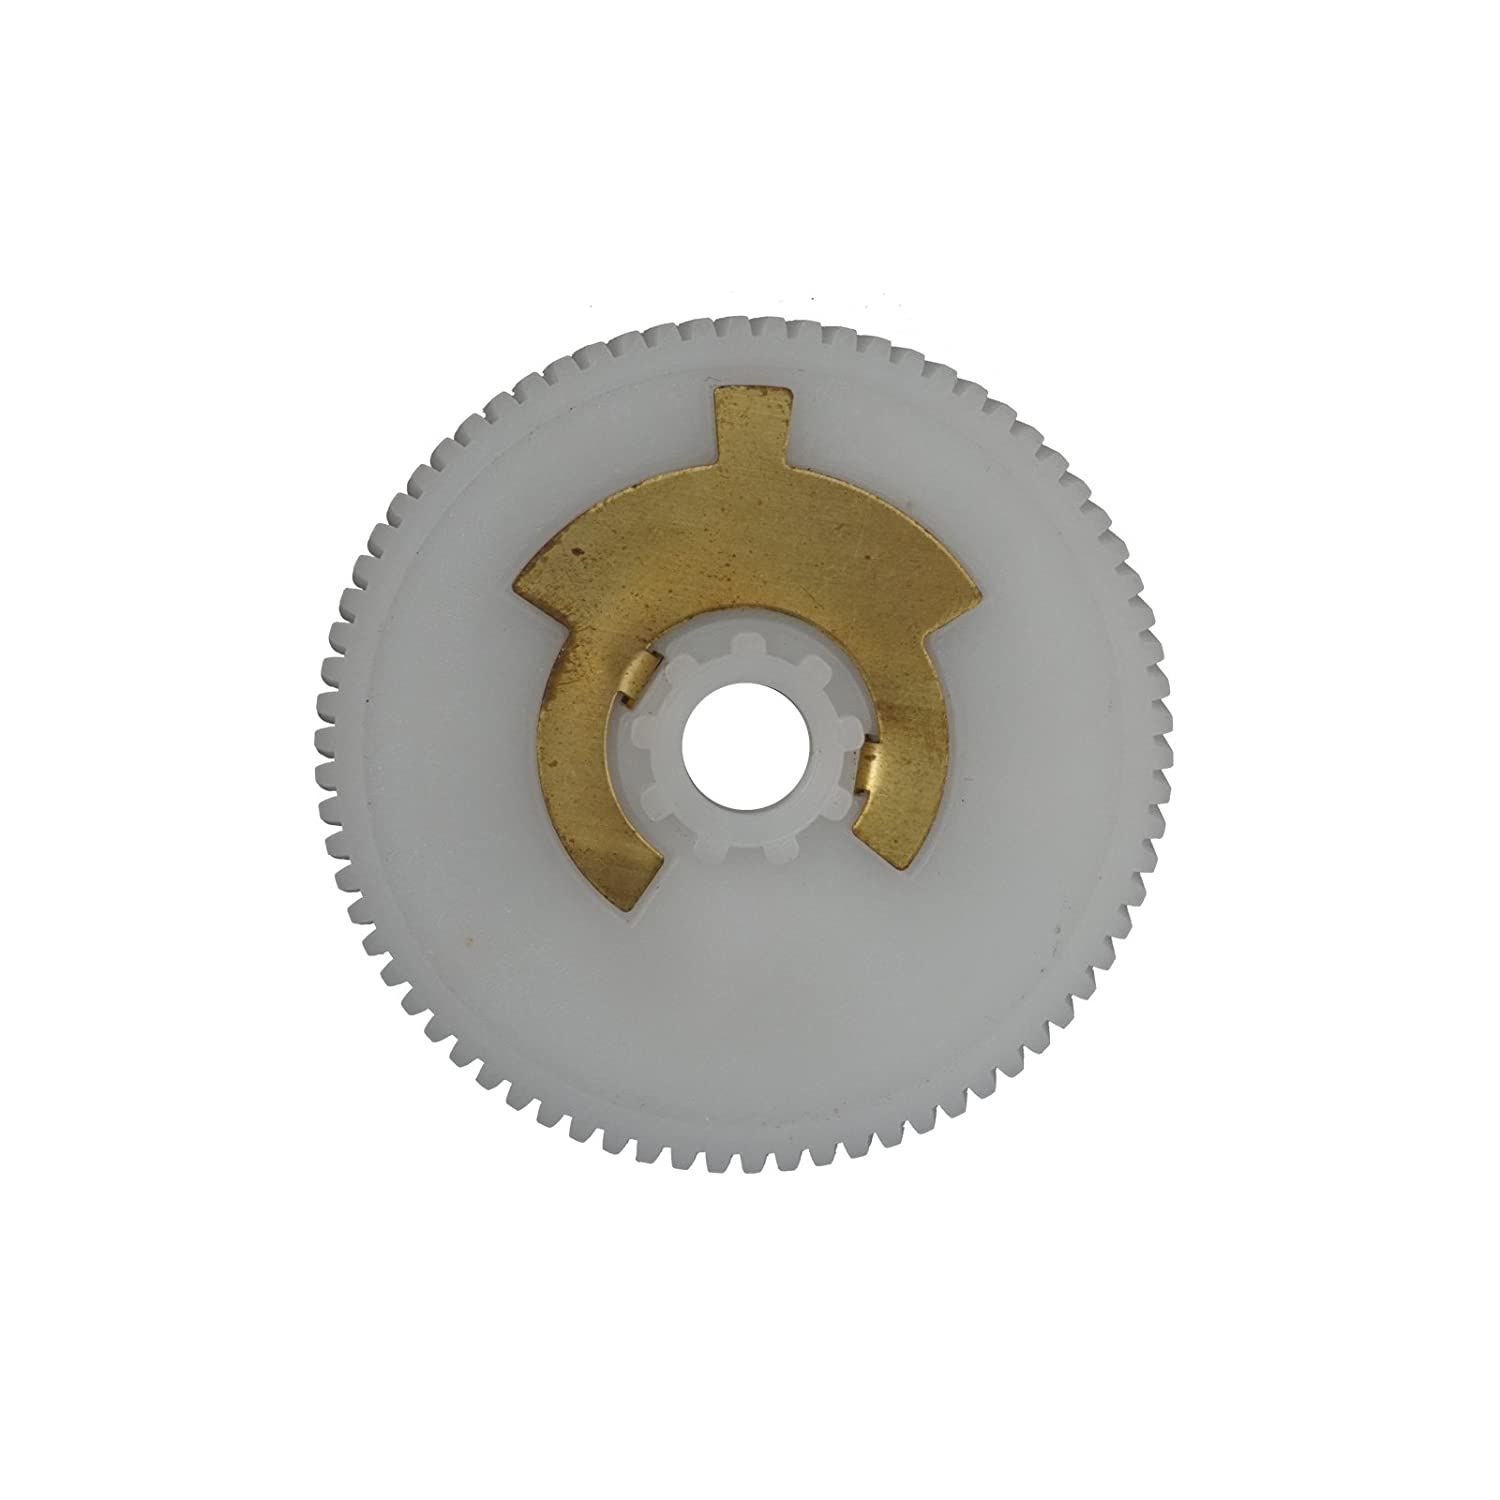 Bross BGE548 Rear Window Wiper Motor Repair Gear with Metal for Range Rover Land Rover Outer Diameter: 53.62 mm